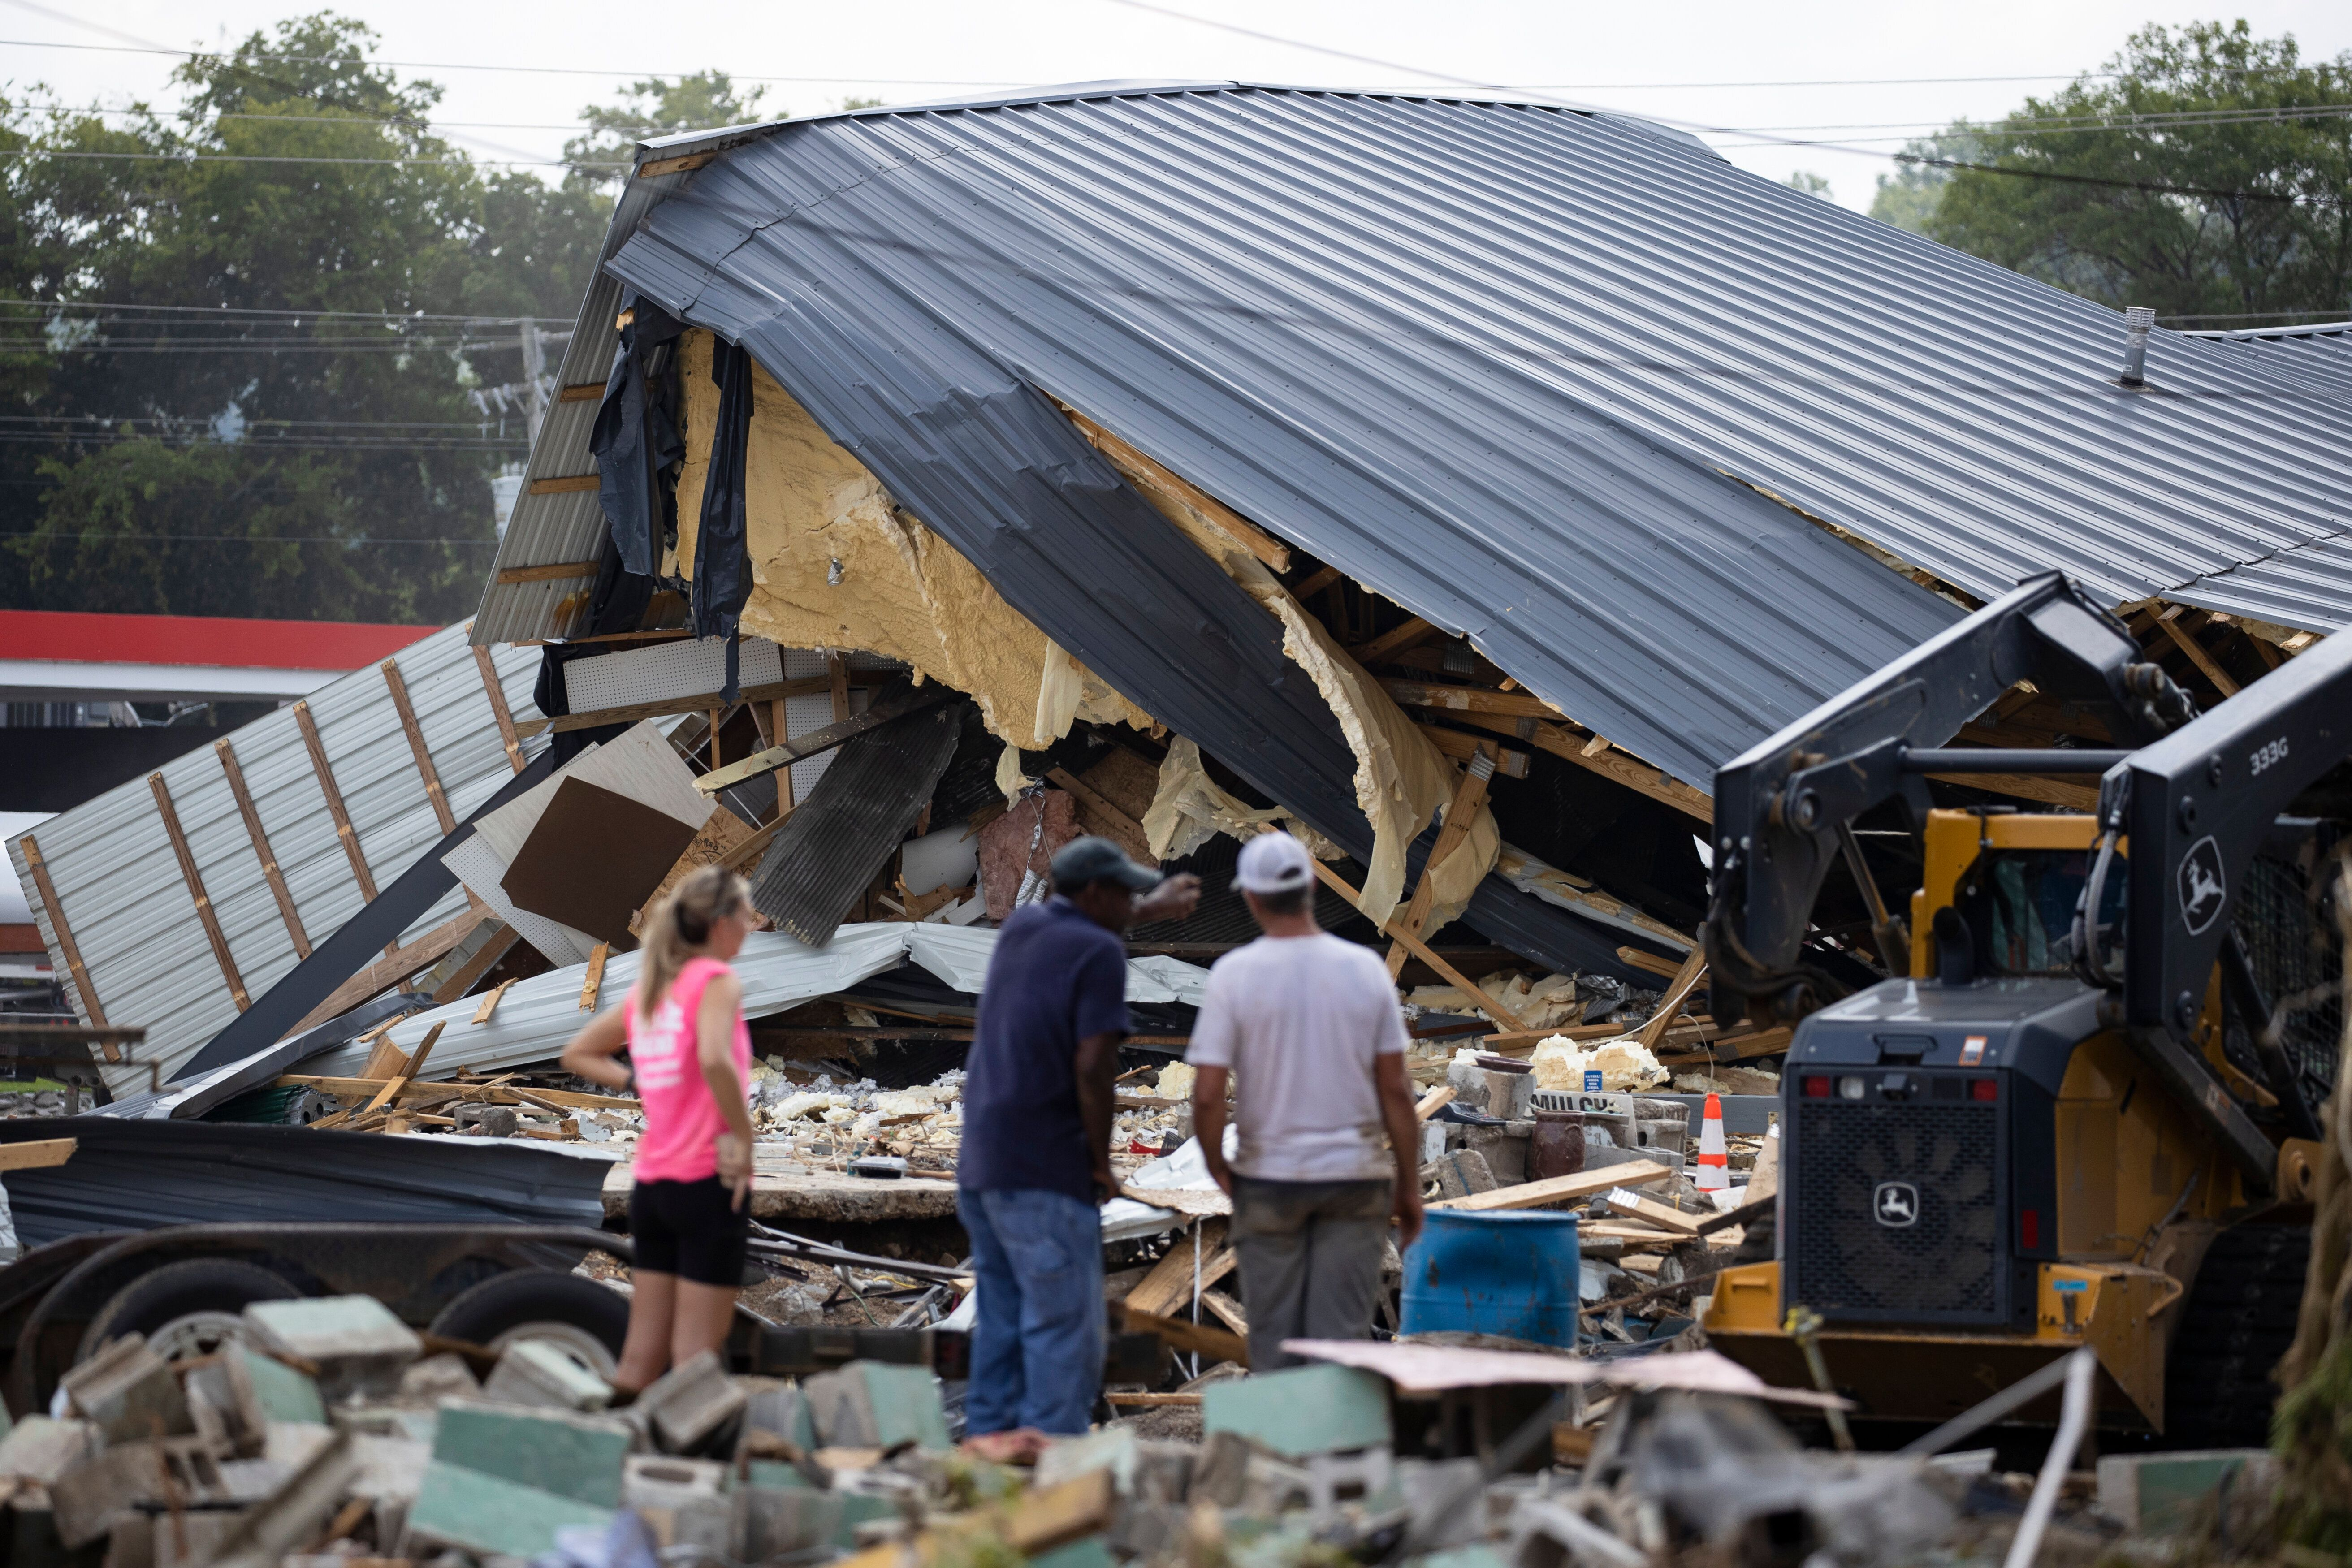 Heavy rains on Sunday caused flash flooding in central Tennessee, leaving at least 22 people dead and more than two dozen mis